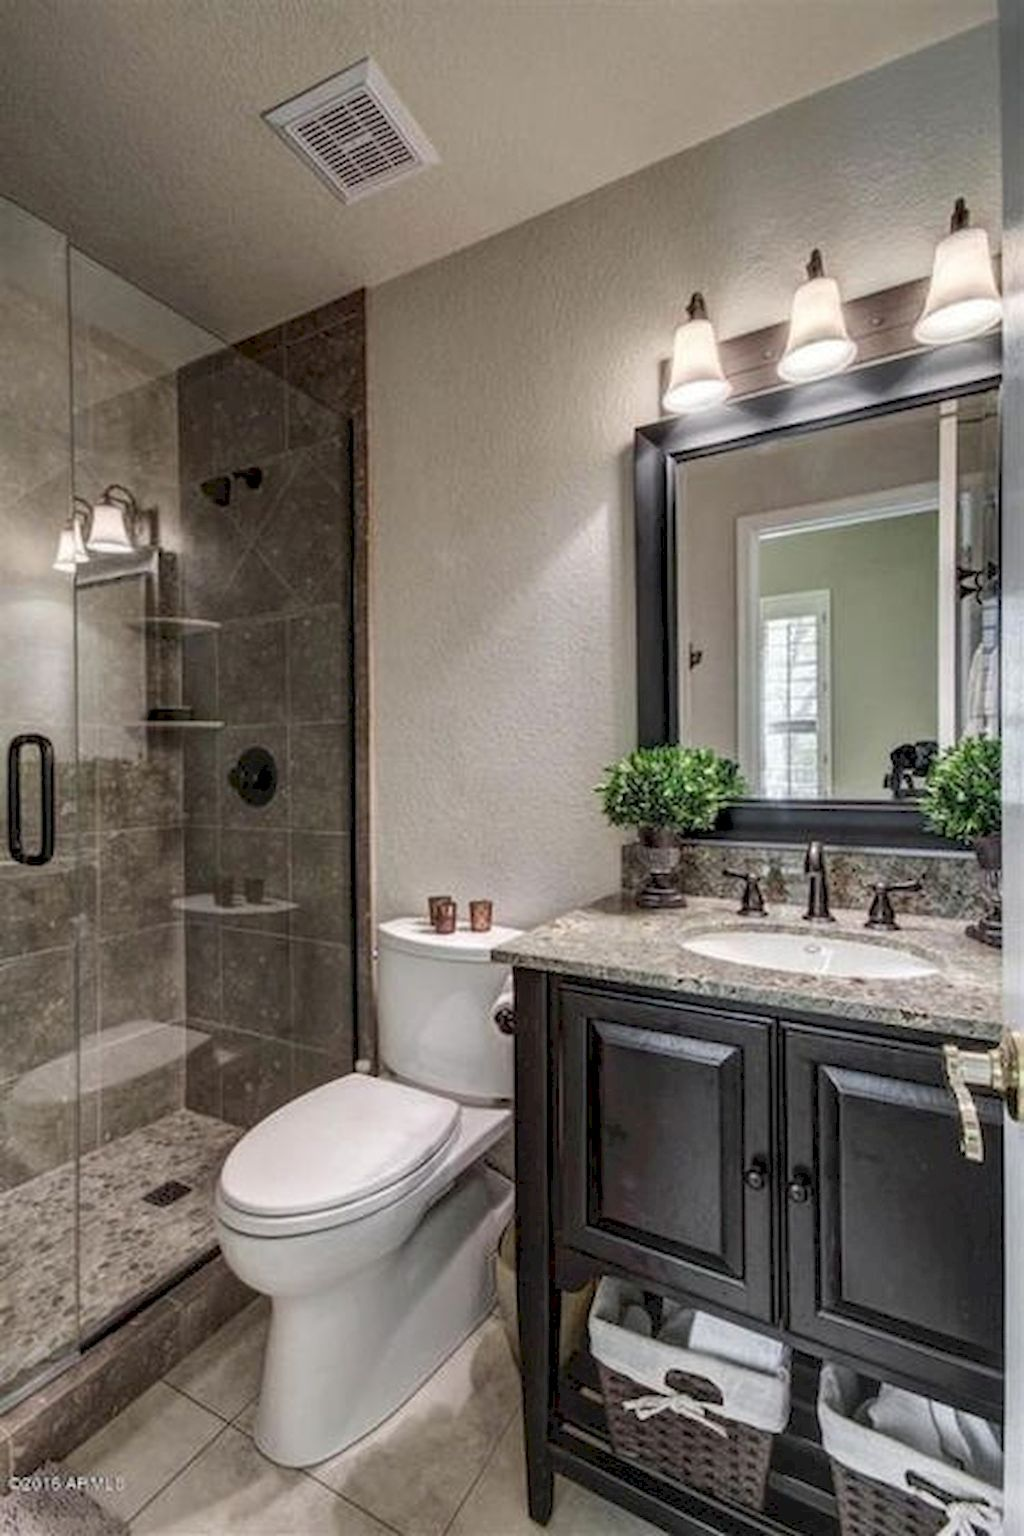 111 awesome small bathroom remodel ideas on a budget (5 ...